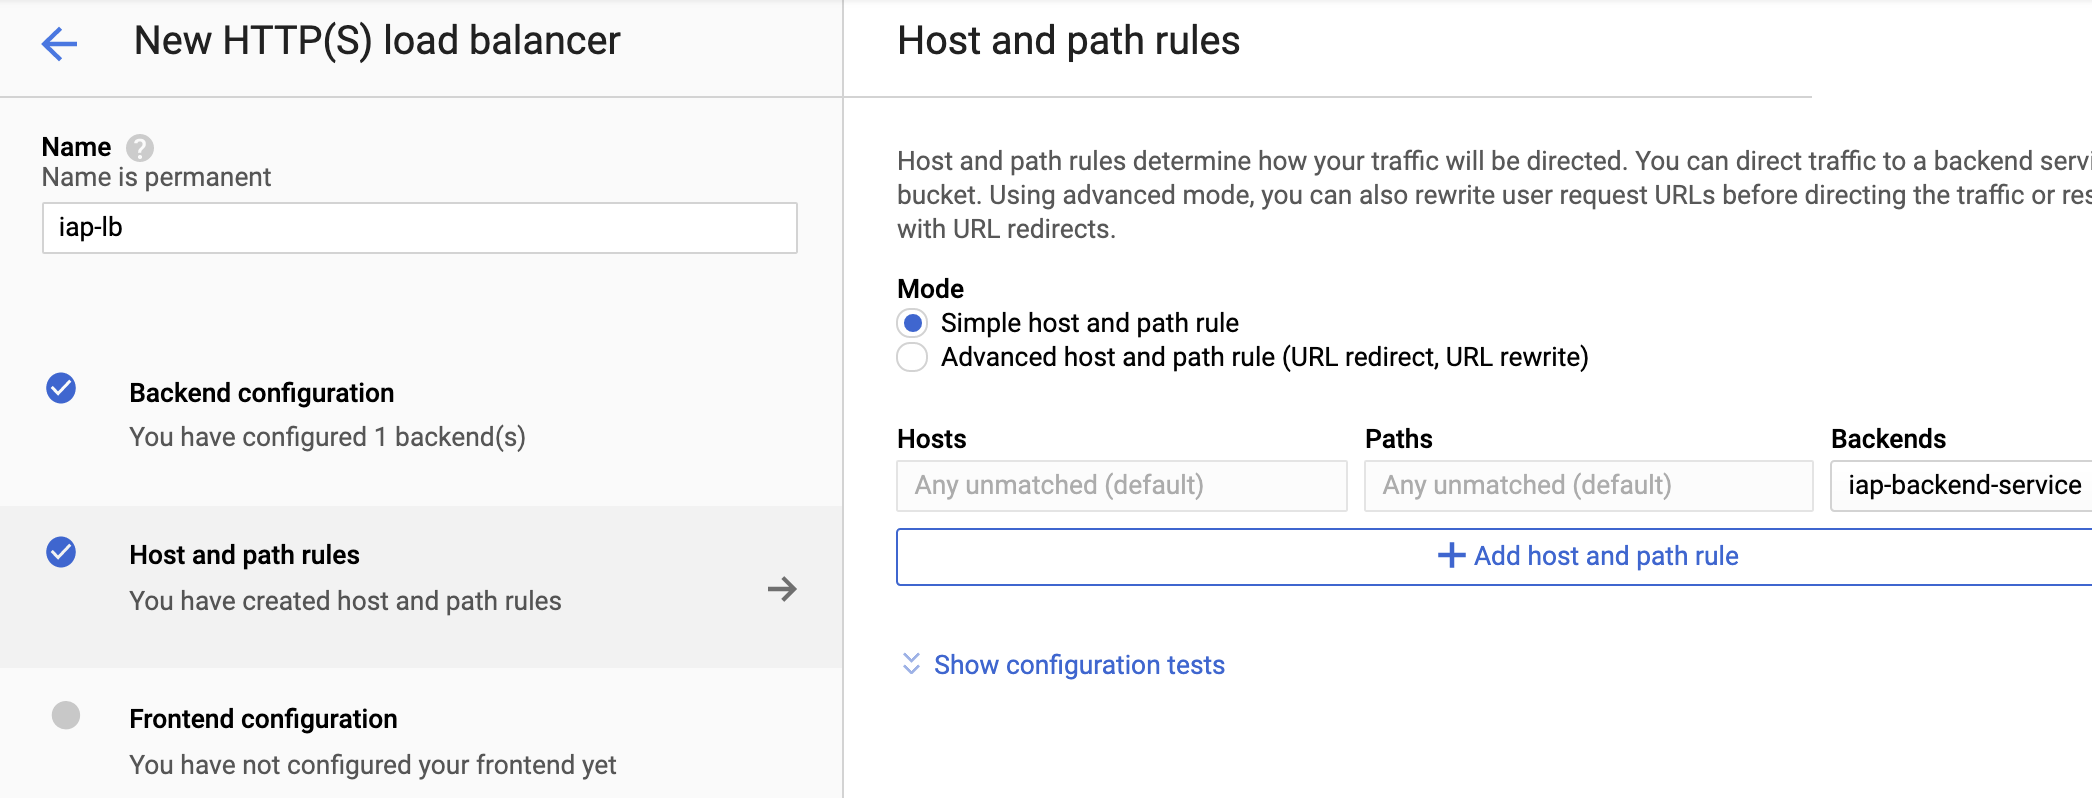 Host and path rules 保持預設